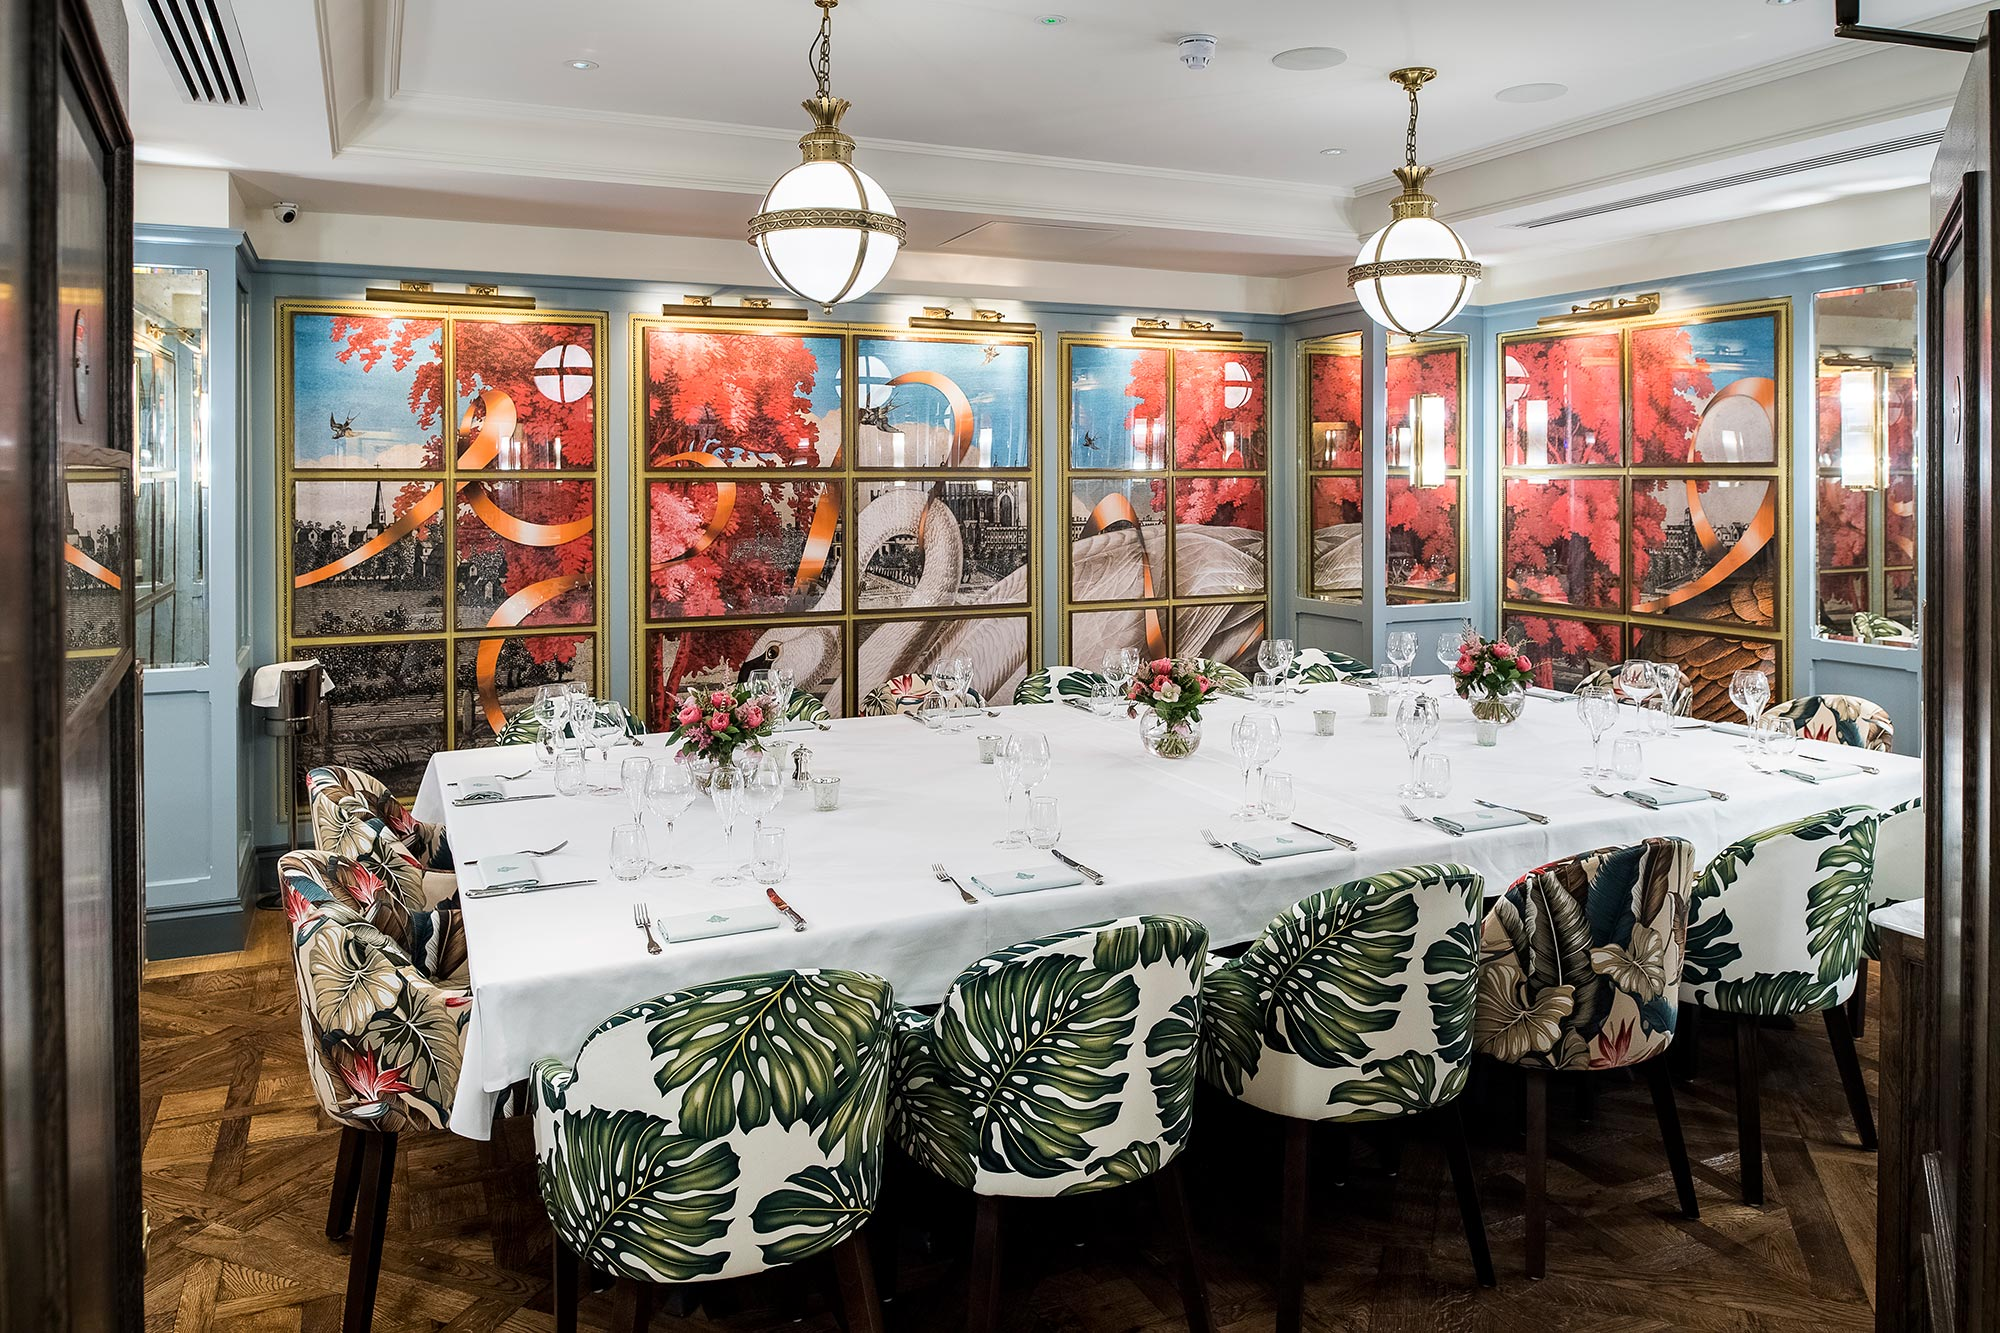 Private Dining Room in Cambridge, The Ivy Cambridge Brasserie - The Ivy Cambridge Brasserie